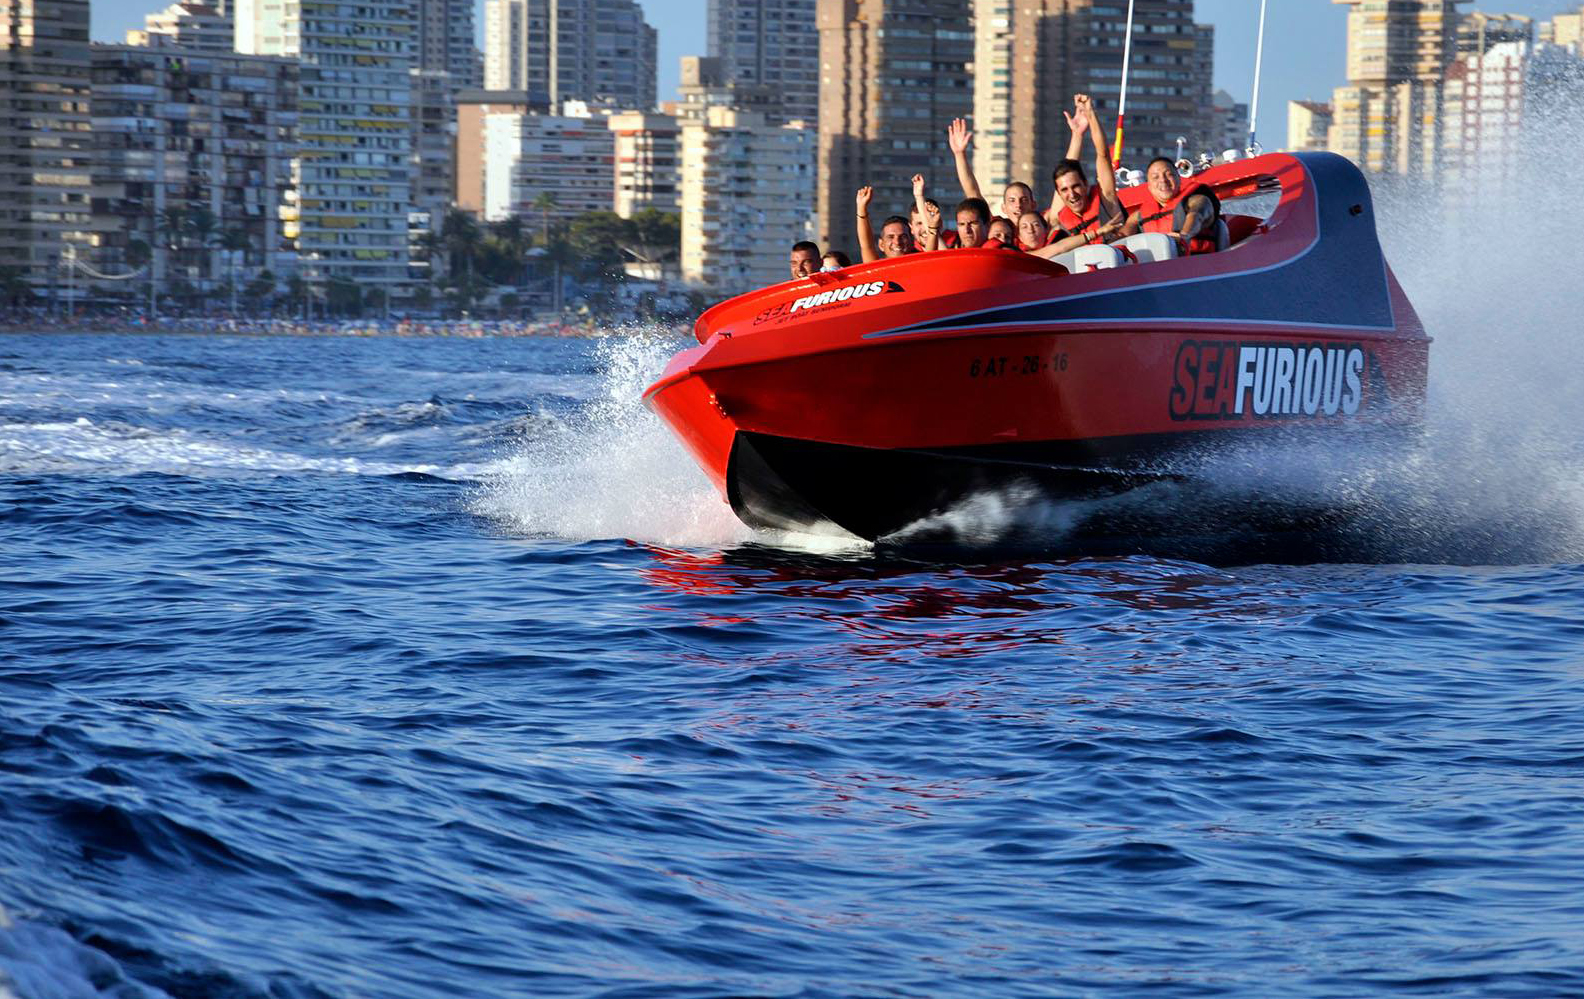 Photo from Sea Furious Powerboat